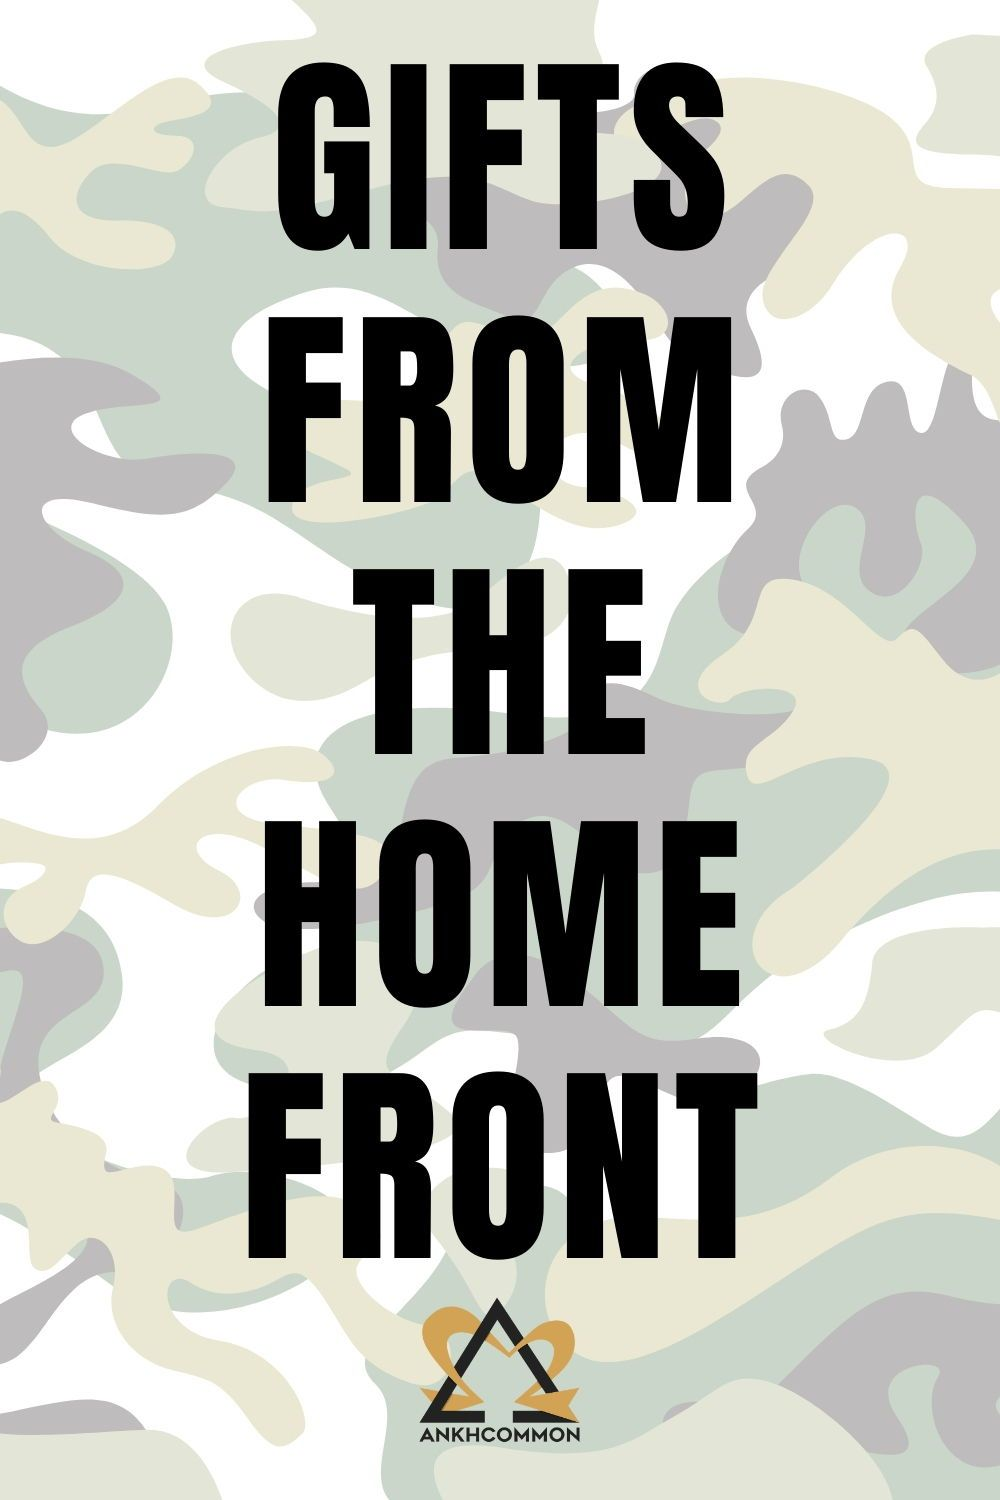 Gifts from the home front. Read more about how to send ...